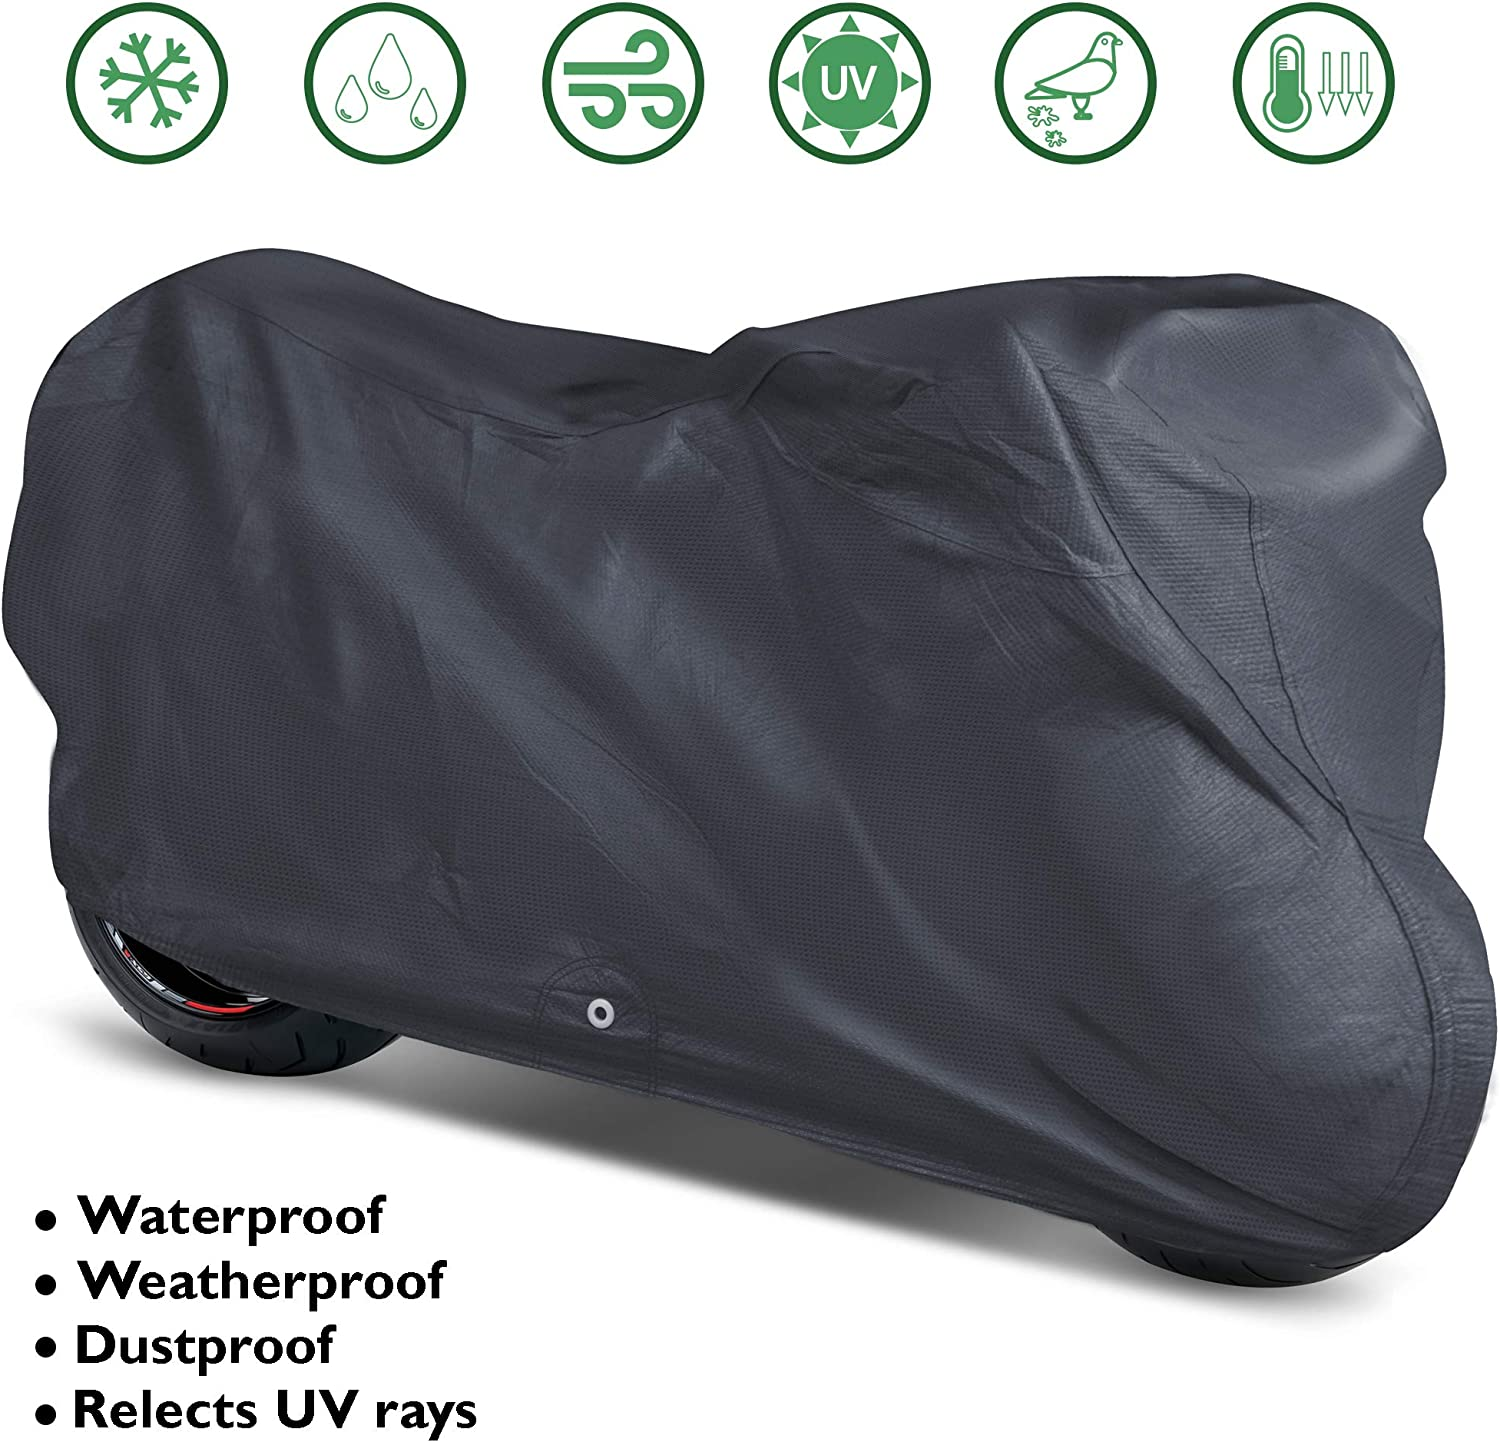 OxGord Signature Motorcycle Cover - 100% Water-Proof 5 Layers - Ready-Fit / Semi Custom - Fits up to 111 Inches